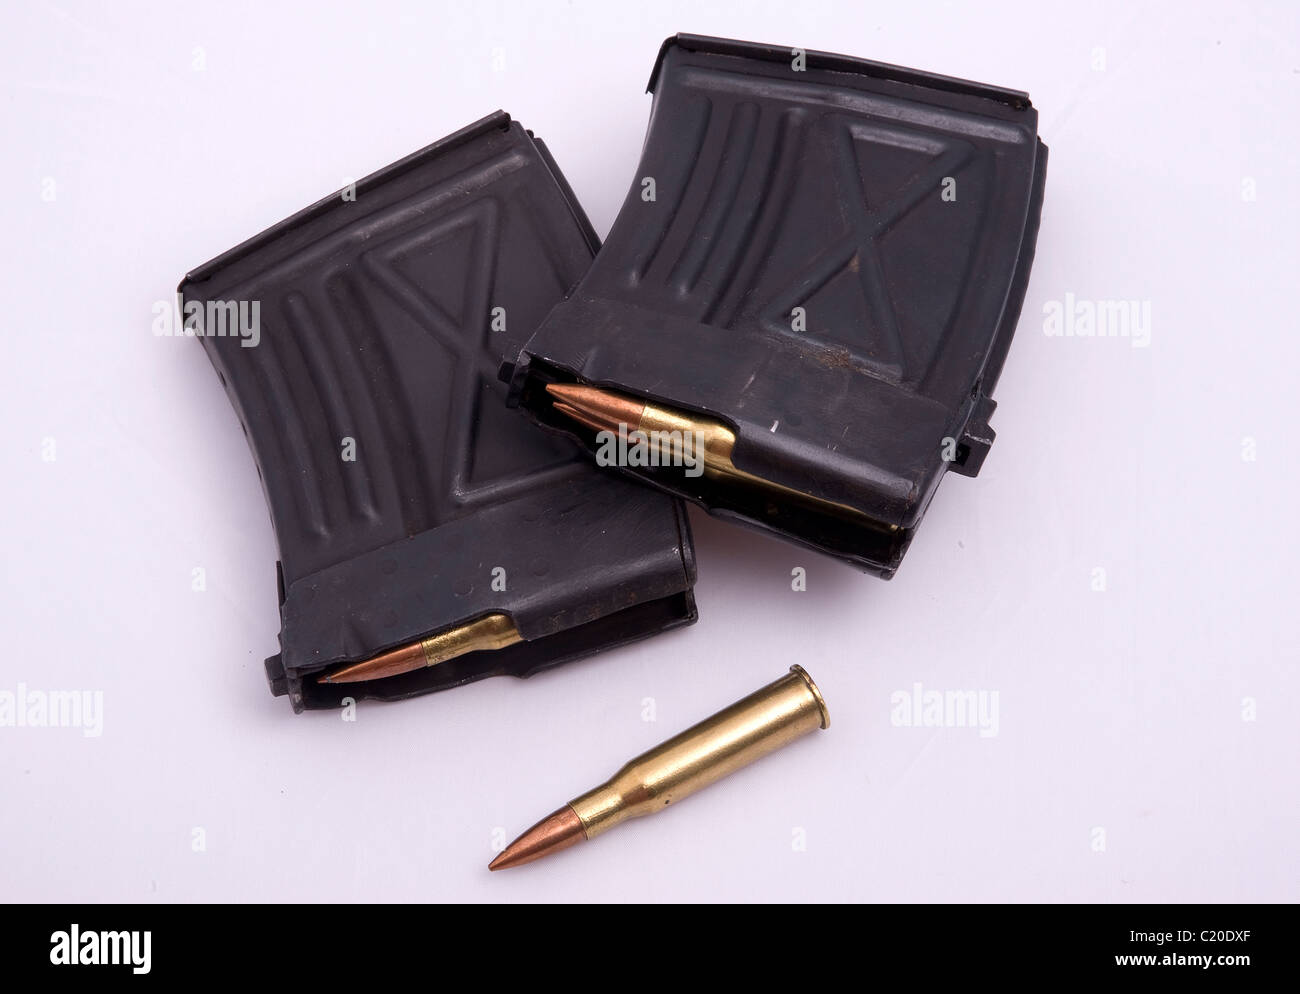 Ammunition and magazines for a sniper rifle. - Stock Image